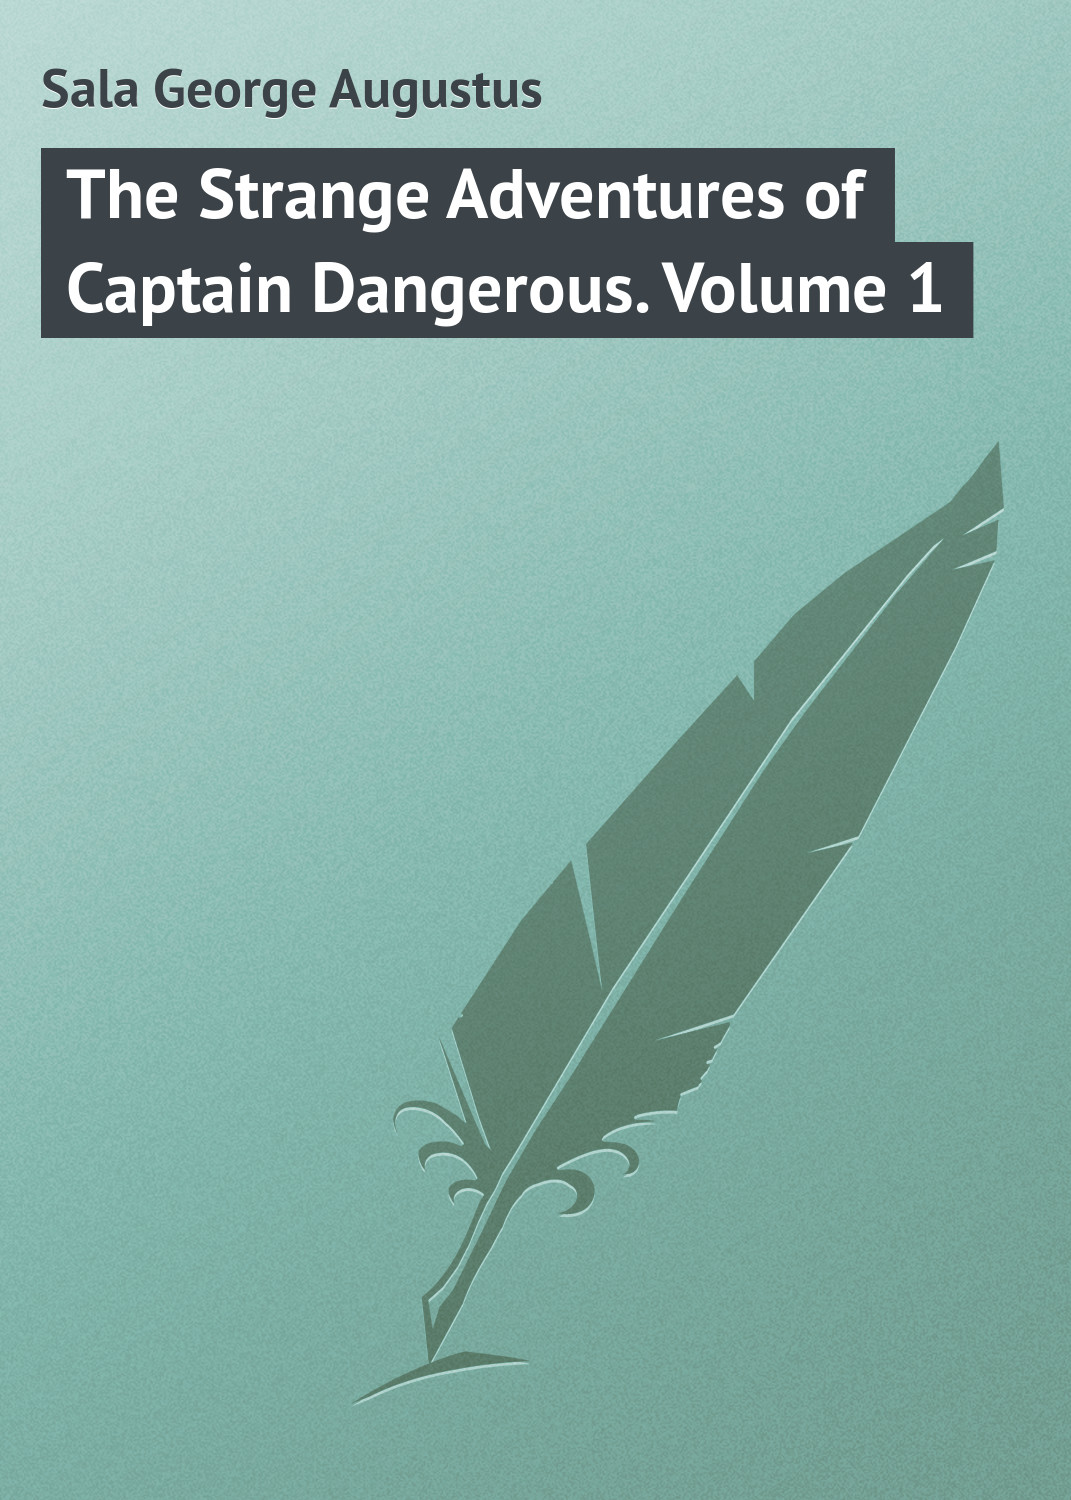 Sala George Augustus The Strange Adventures of Captain Dangerous. Volume 1